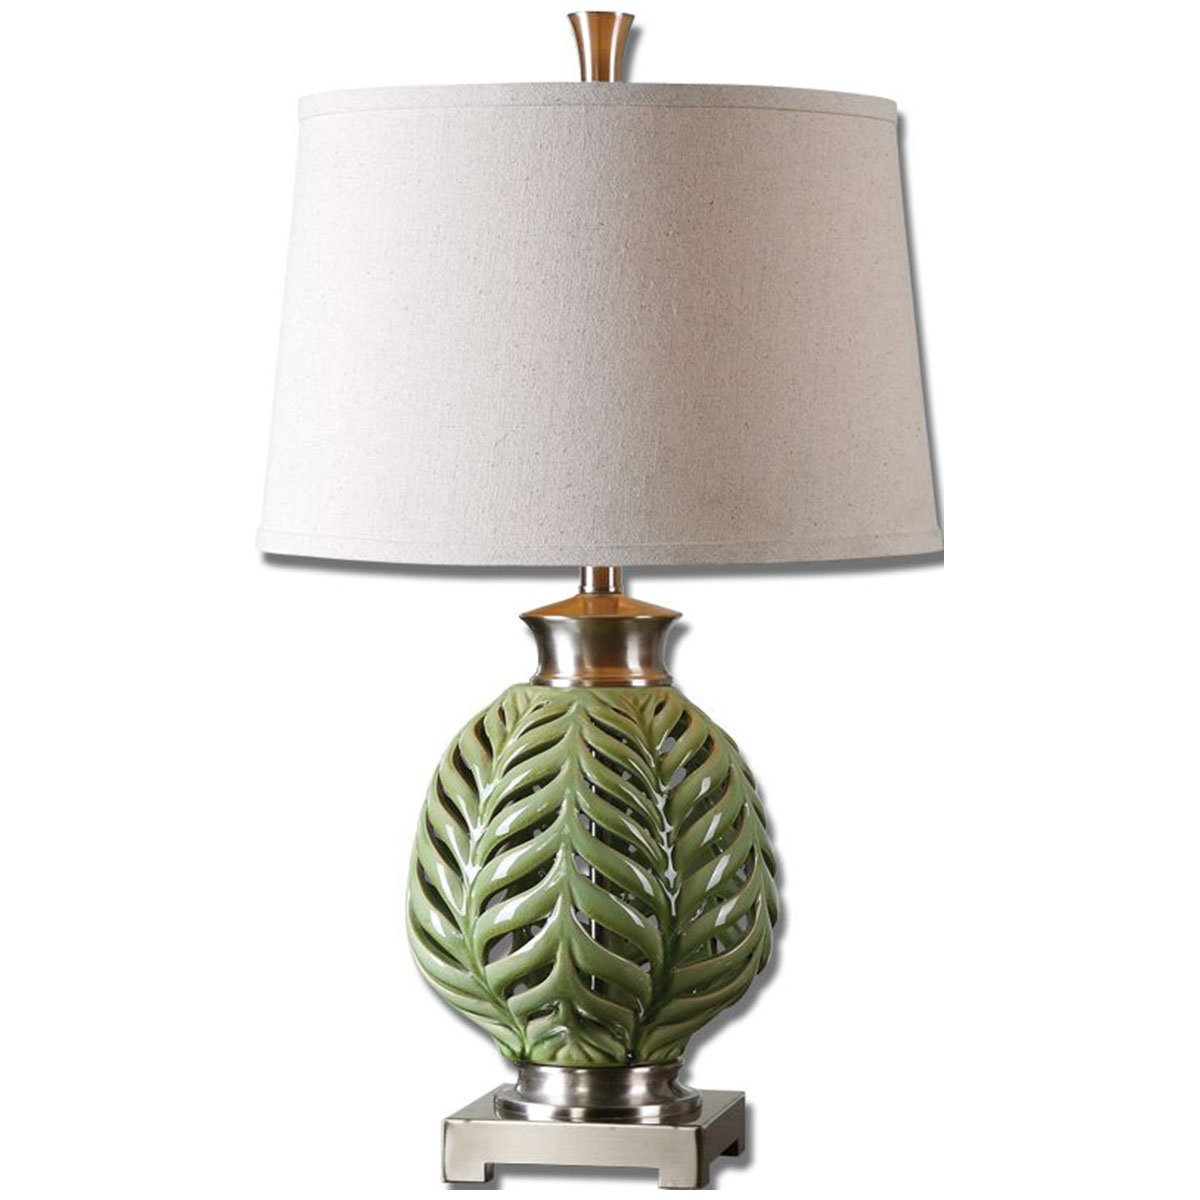 Amazon.com: Uttermost 26285 Flowing Table Lamp, Fern Green: Home U0026 Kitchen